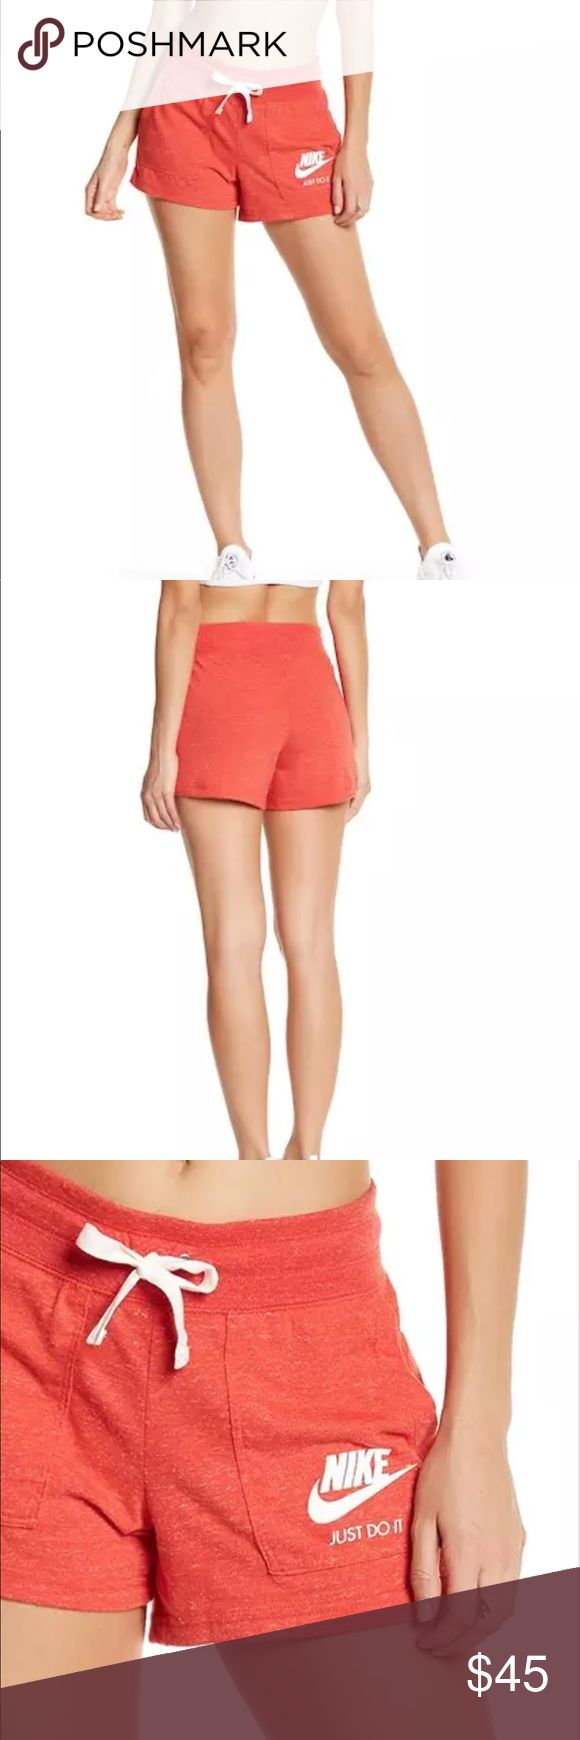 "Nike Women's Orange Gym Cotton Blend Short * Nike Women's Orange Gym Cotton Blend Short Size XS * New with tag * Purple * Elasticized waist with drawstring * 2 front patch pockets * Marl knit construction * Brand logo detail  * Size S - Approximately 14"" waist(side to side) and Total Length 12"" Nike Shorts"